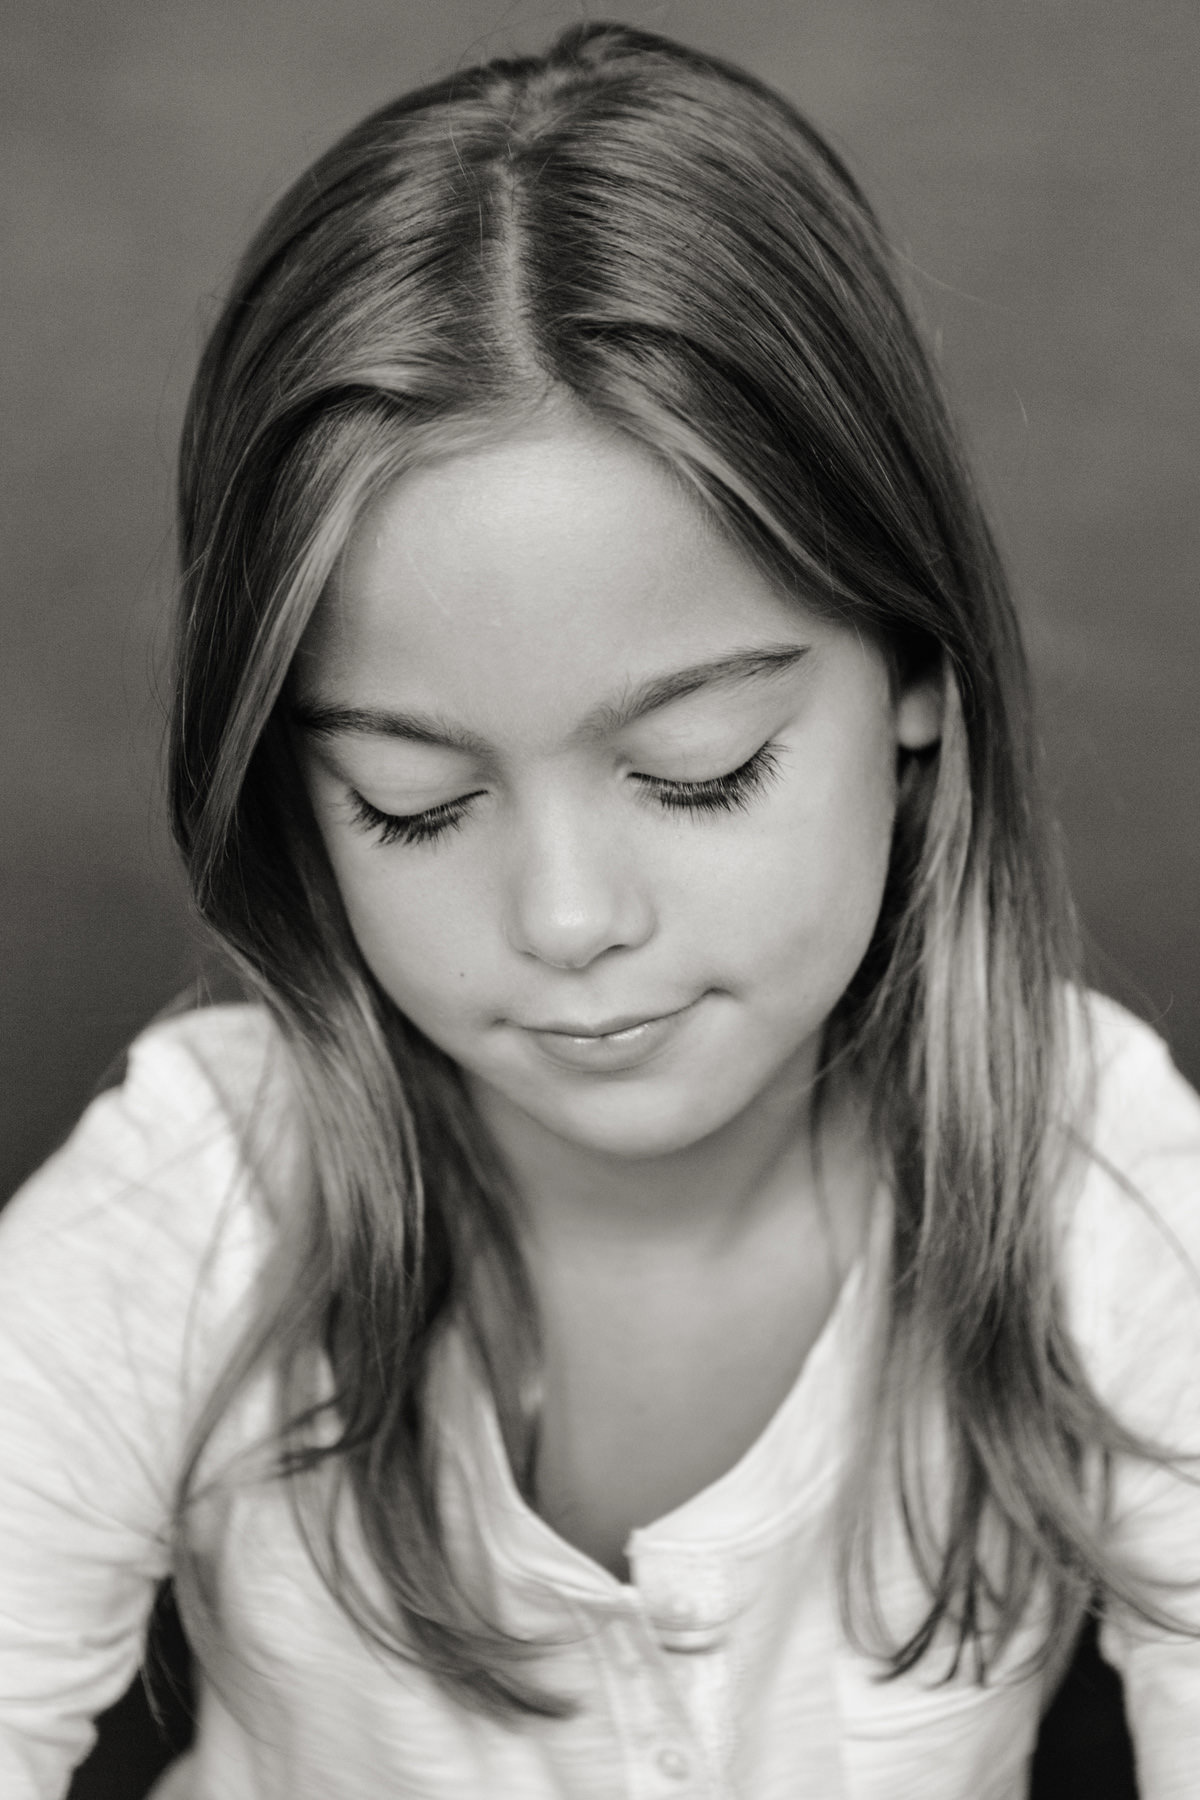 studio-child-photographer-st-louis-40090713_Haines-033bw